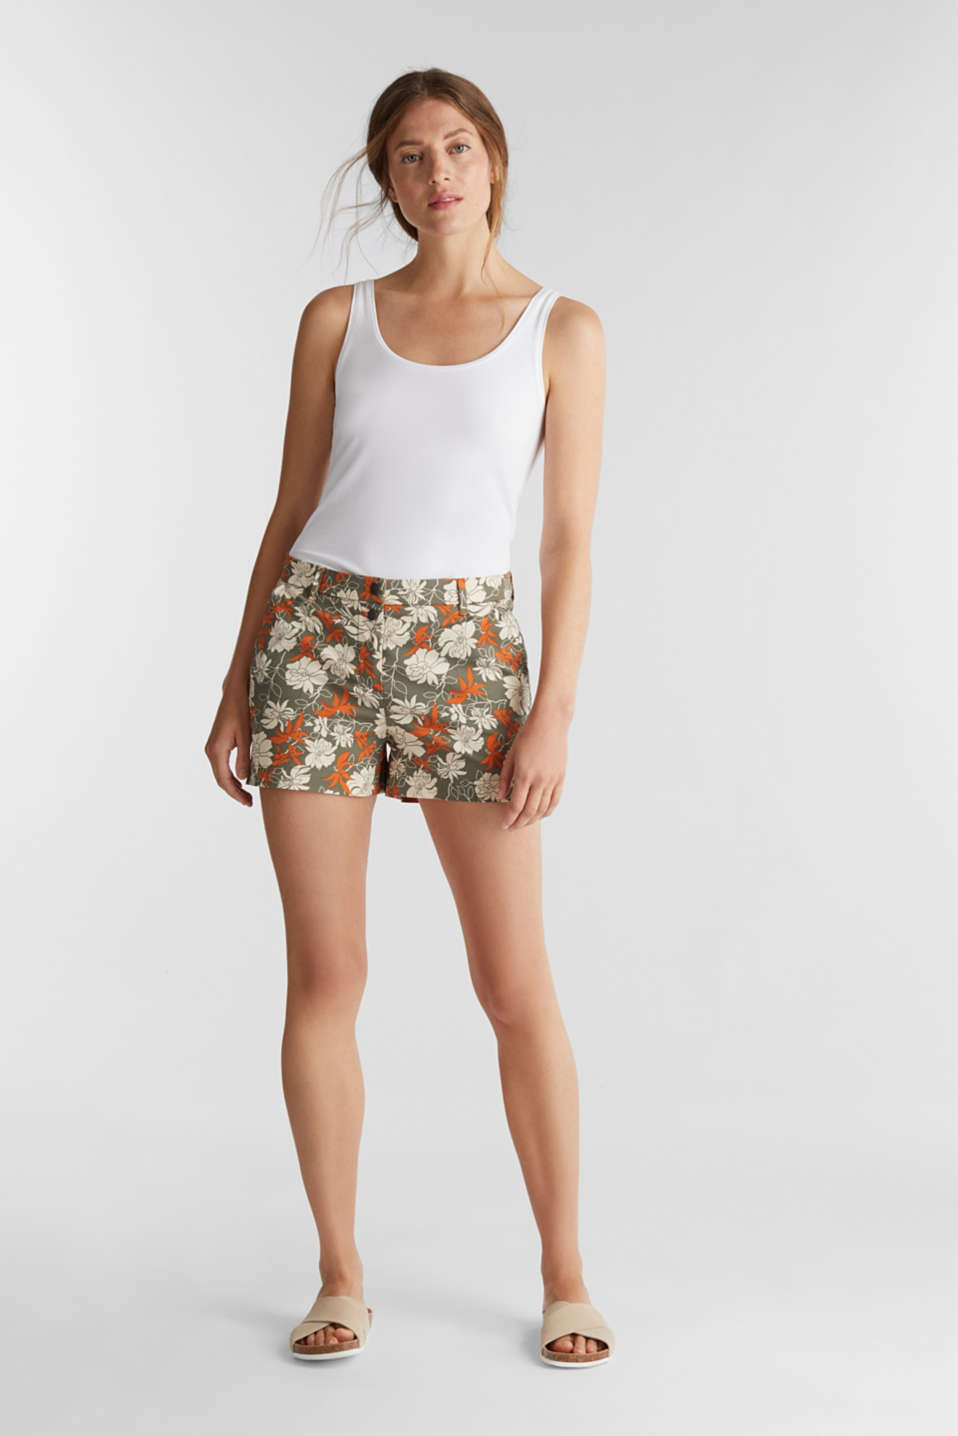 Shorts with a floral print, KHAKI GREEN 4, detail image number 1